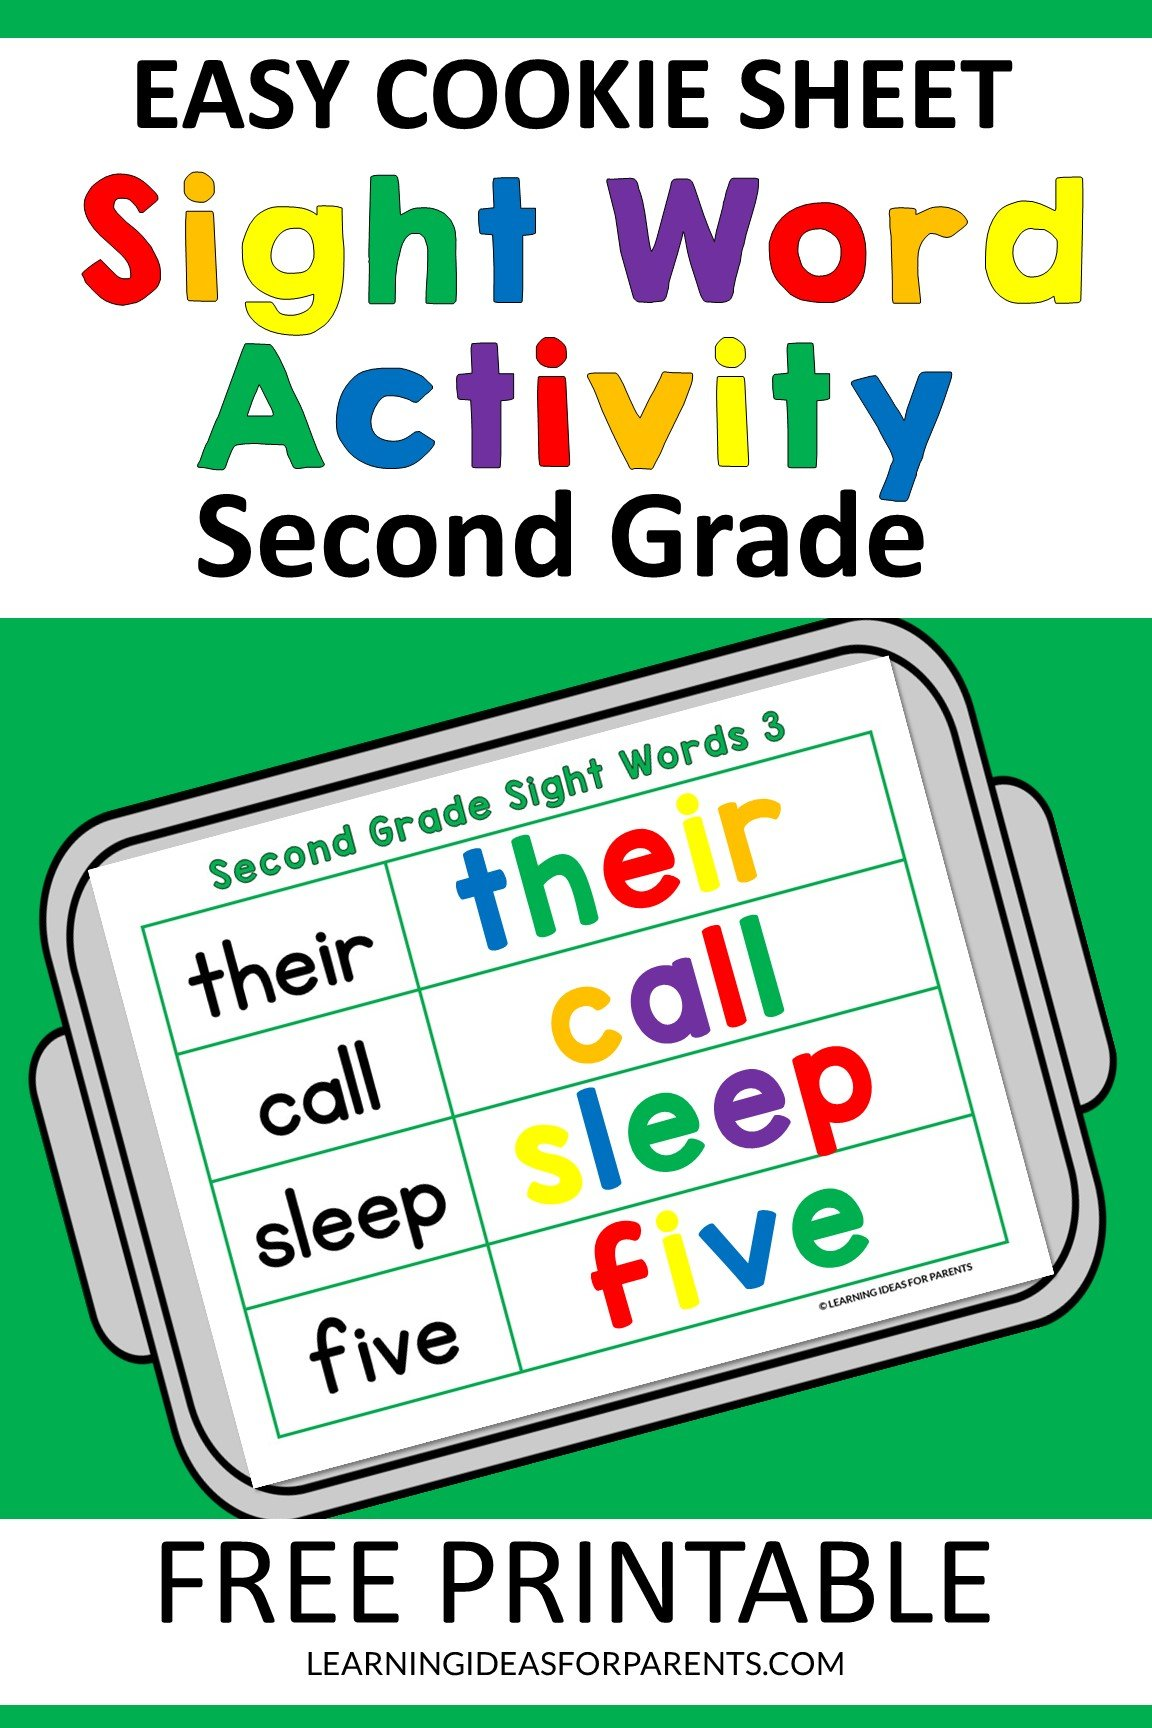 Free printable easy cookie sheet second grade sight word activitiy.